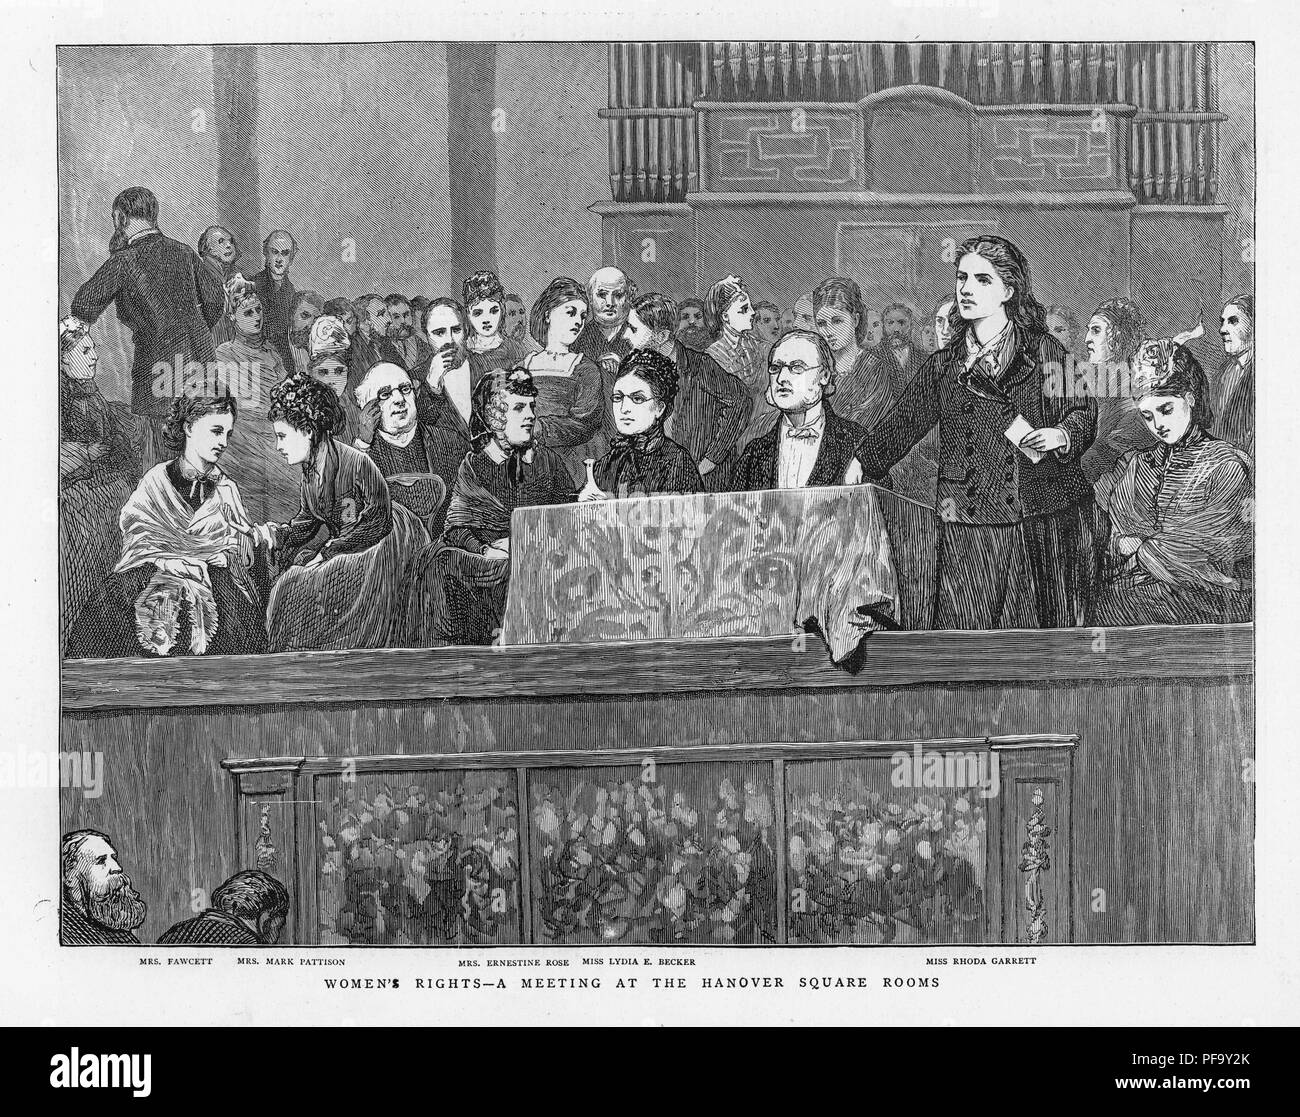 Black and white print illustrating English suffragists Lydia Becker, Dame Millicent Garrett Fawcett, Mrs Mark Patison (aka Emilia Dilke), Mrs Ernestine Rose, and Rhoda Garrett, along with male supporters, demanding rights during a meeting at the Hanover Square Rooms, published for the British market, 1872. () - Stock Image